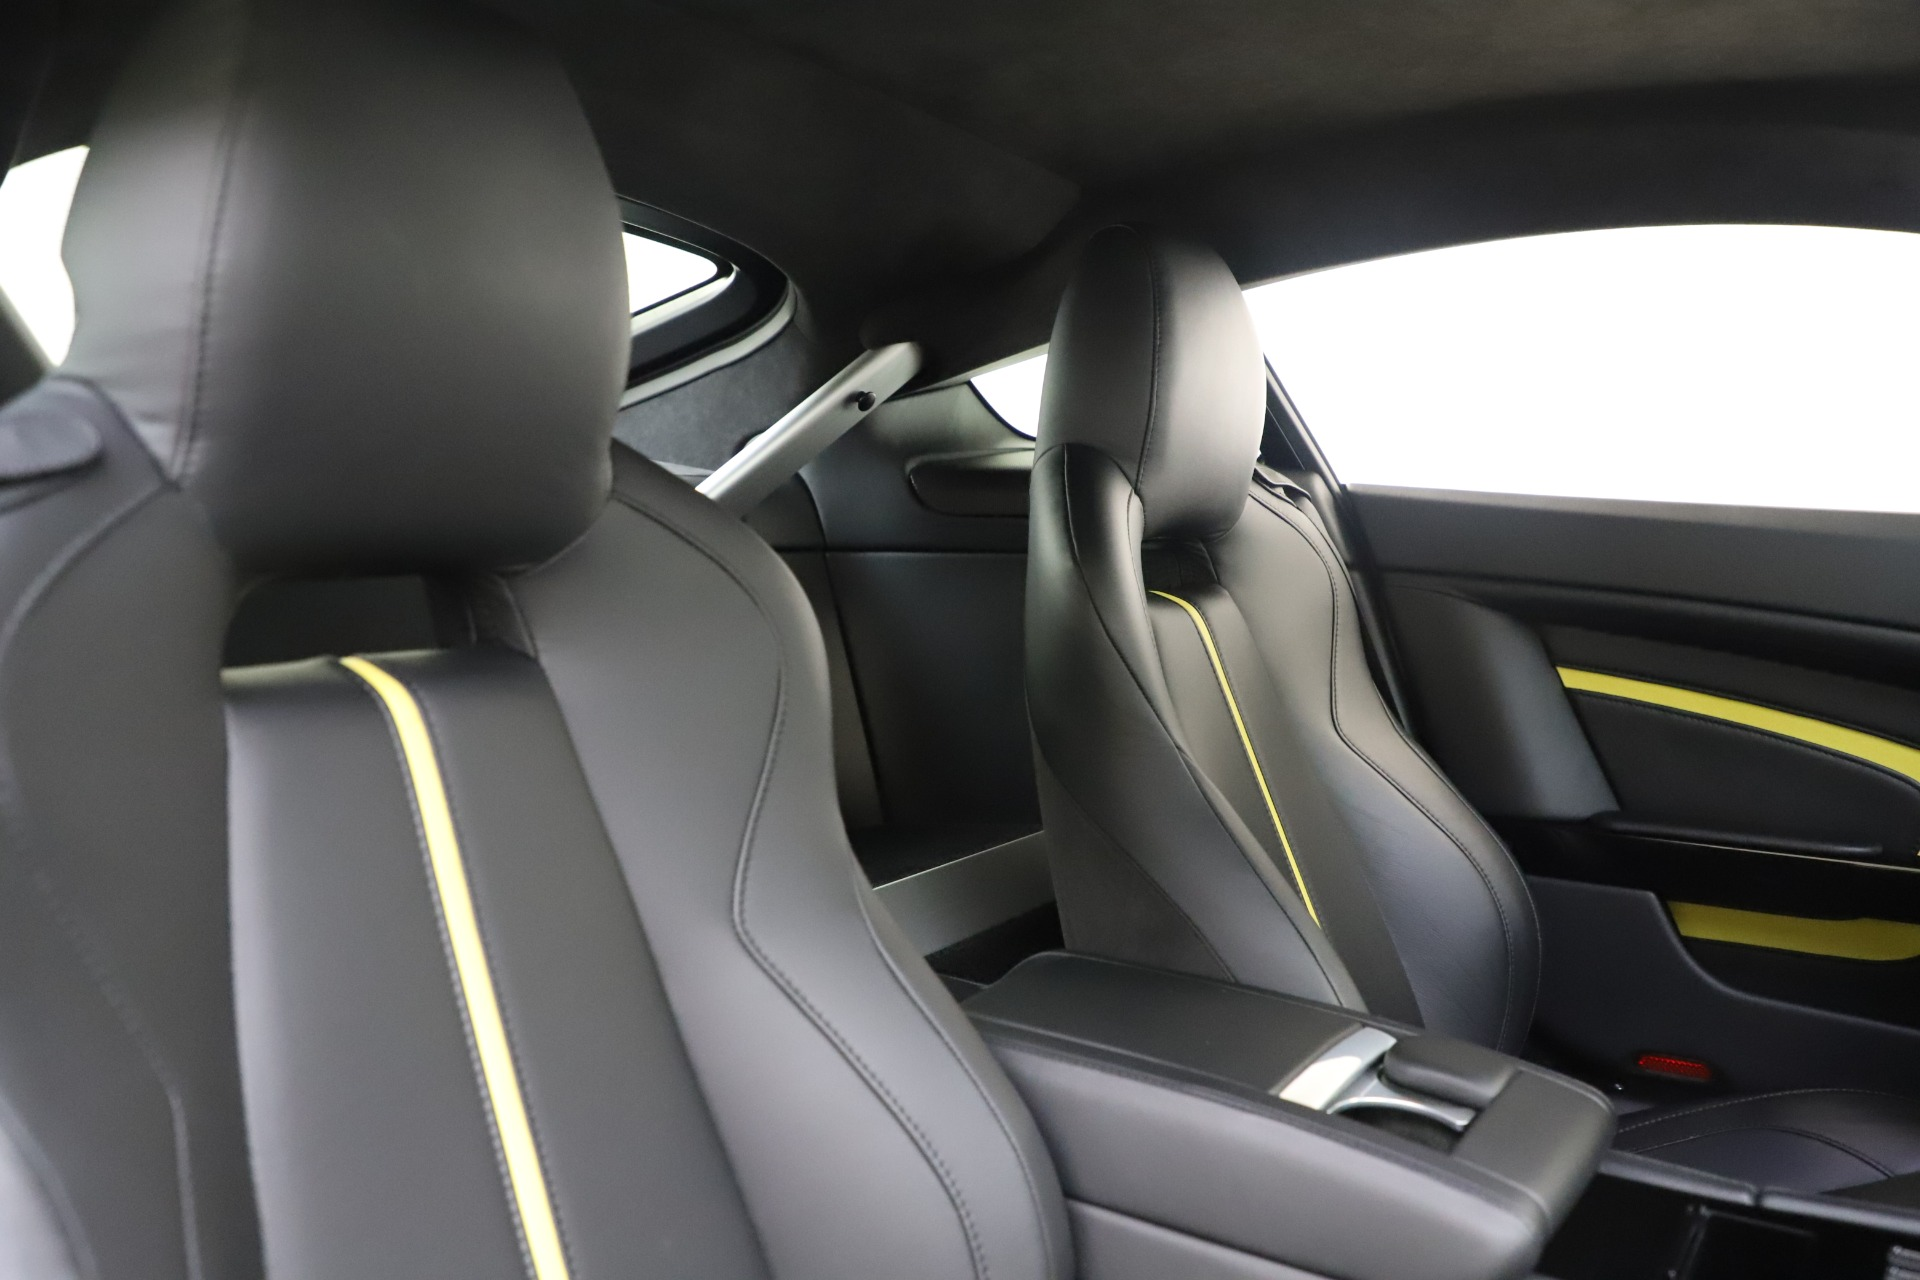 Used 2015 Aston Martin V12 Vantage S Coupe For Sale In Westport, CT 3513_p17